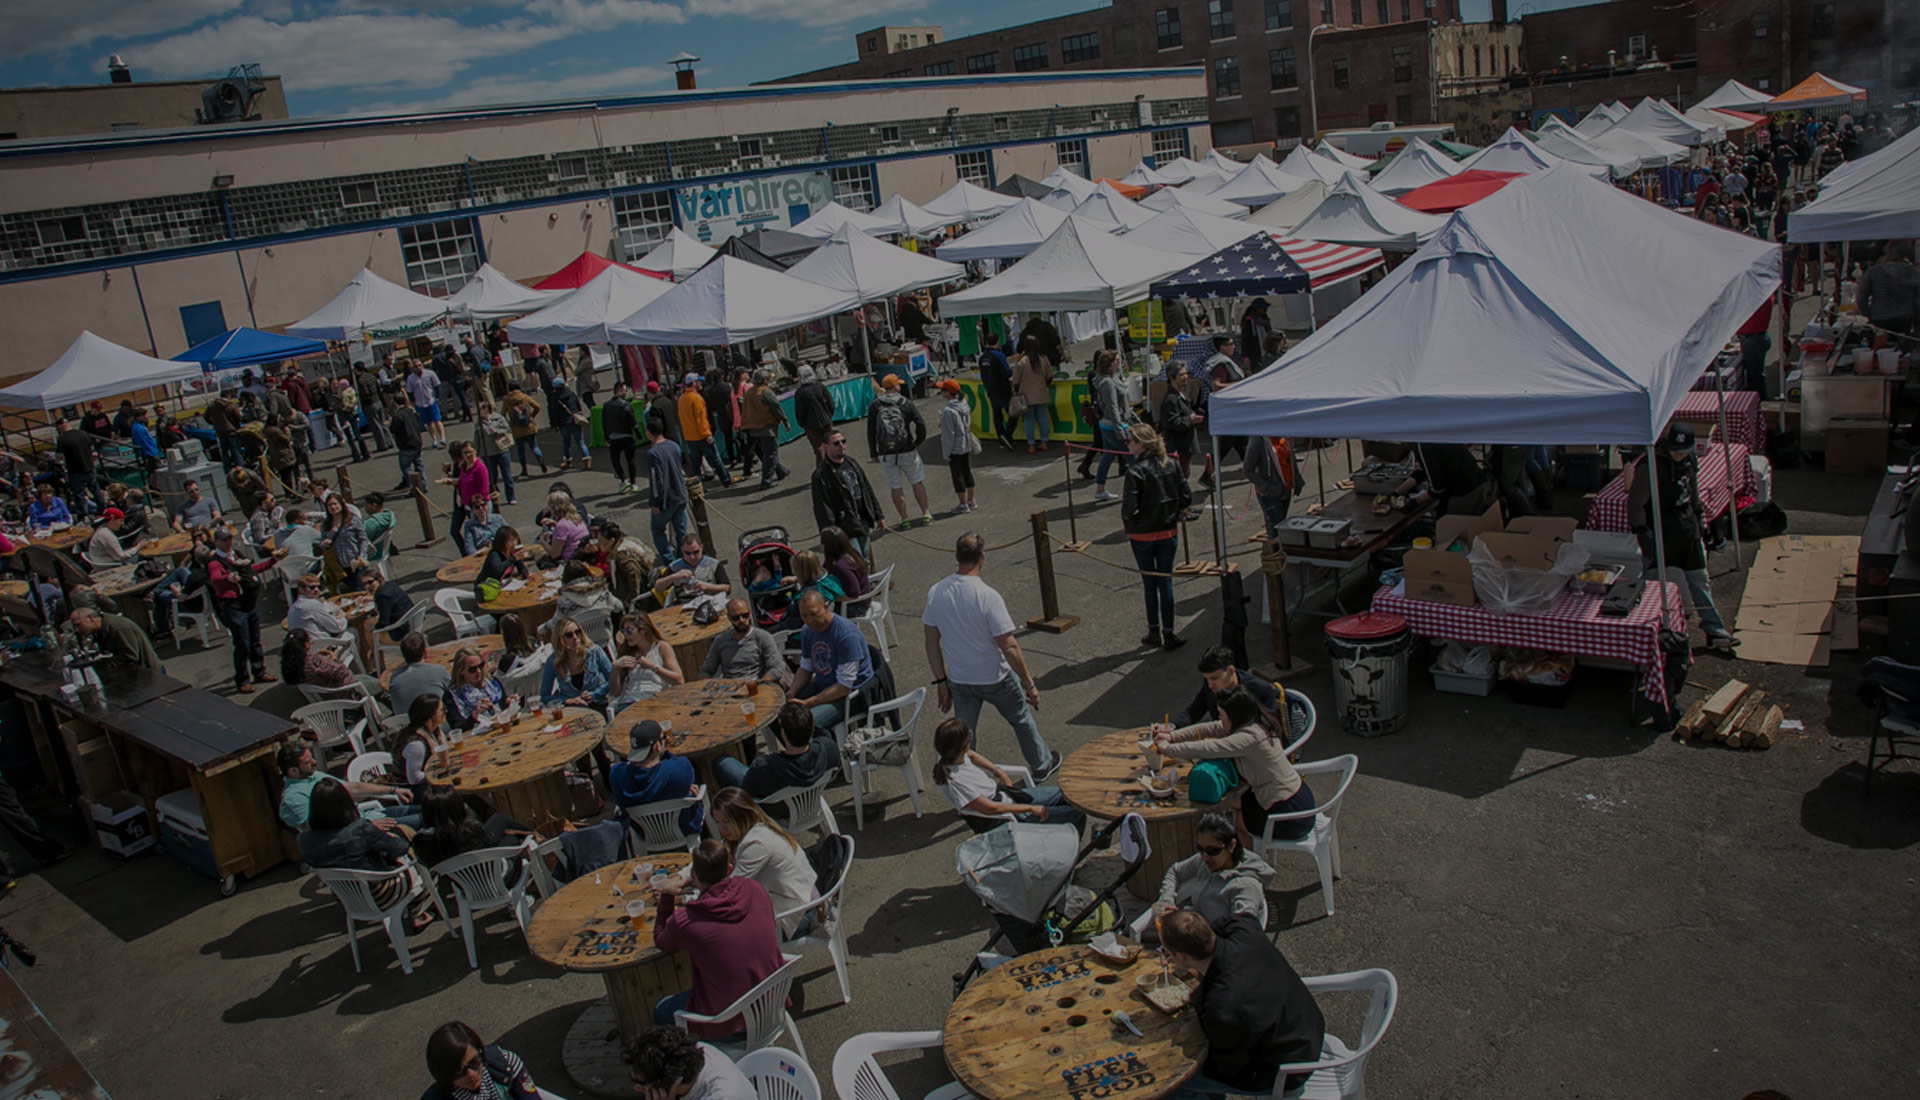 Check Out Lic Flea Food Special Event Line Up